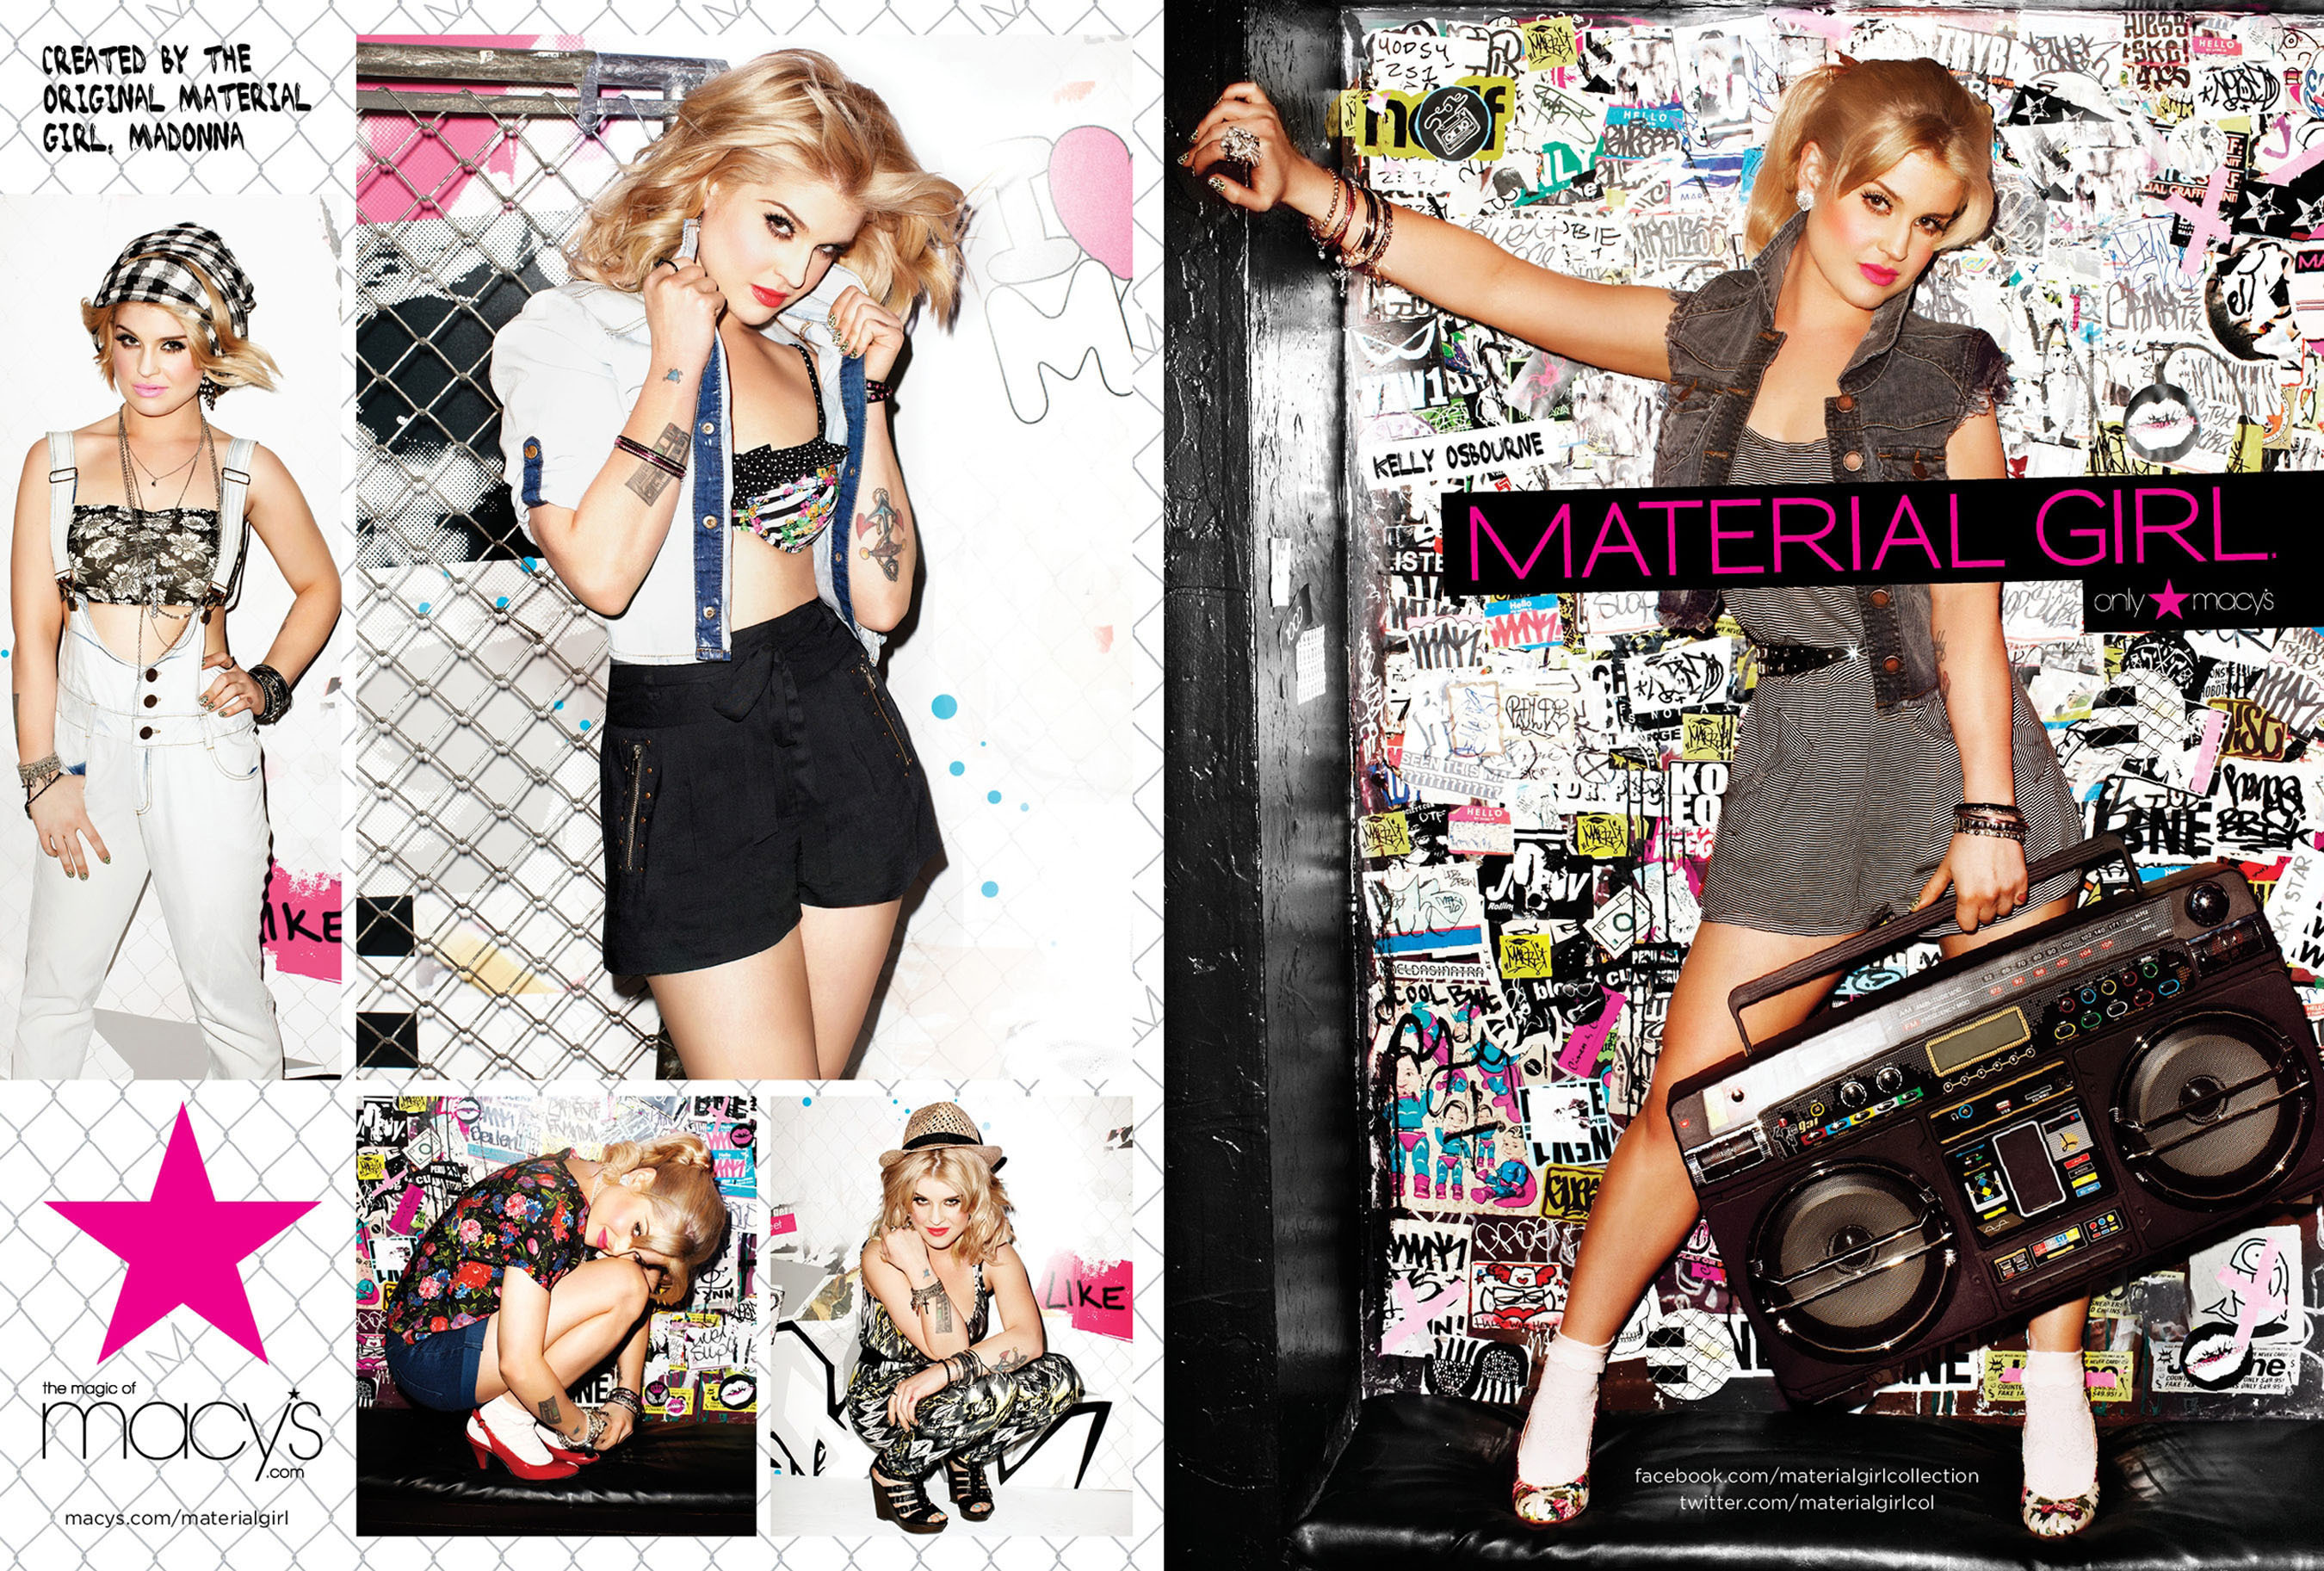 MG Icon, the joint venture between Madonna and Iconix Brand Group, Inc. unveiled today its spring 2011 marketing campaign for its Material Girl brand featuring actress, television host and musician, Kelly Osbourne. Material Girl is available exclusively at Macy's and macys.com in the United States. Follow Material Girl on Twitter at www.Twitter.com/MaterialGirlCol. (PRNewsFoto/Iconix Brand Group, Inc.)